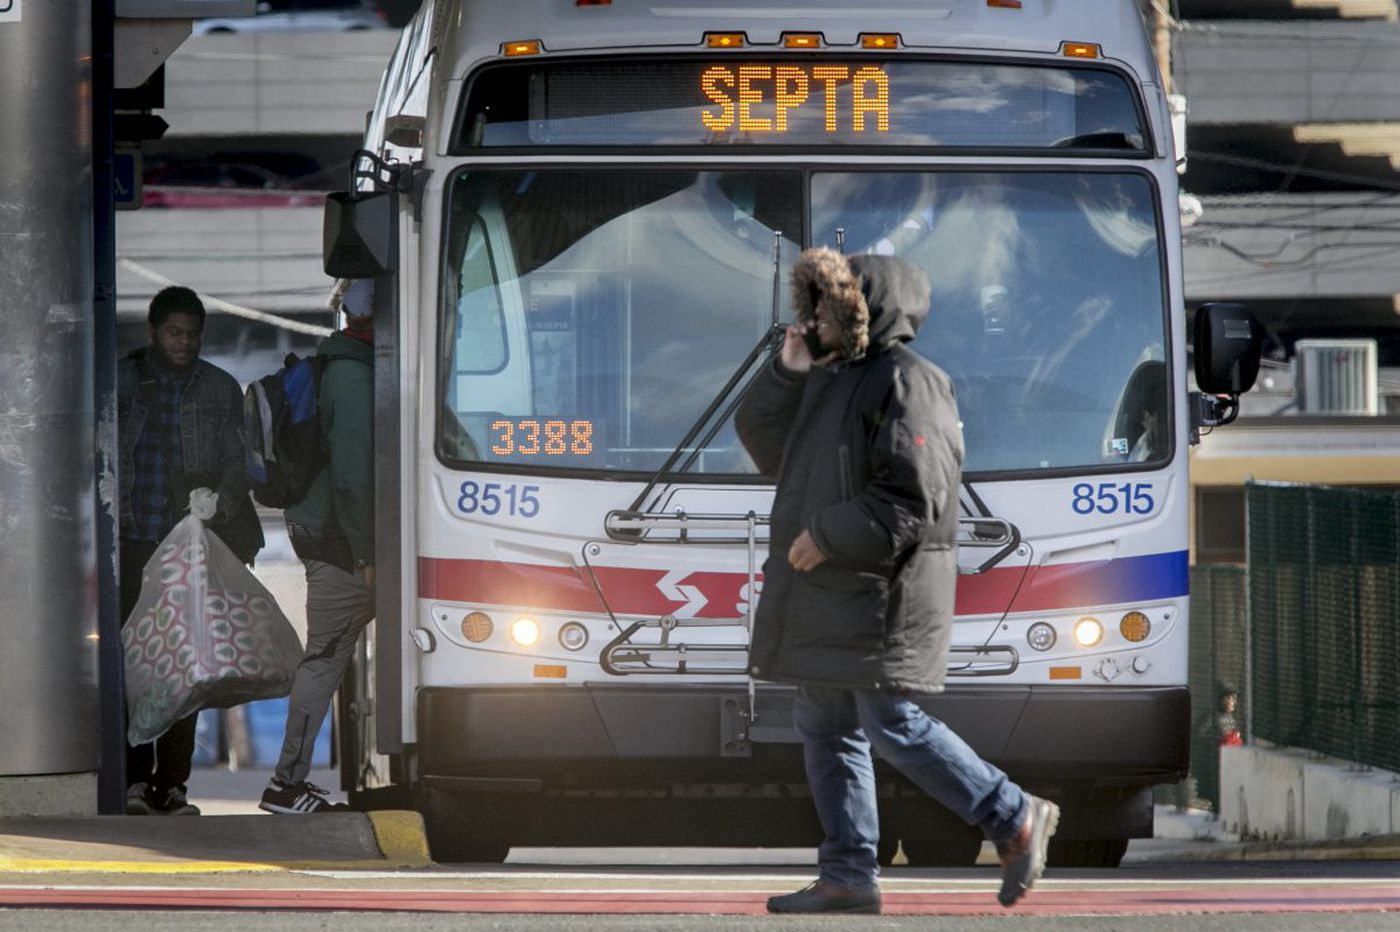 SEPTA bus passenger hurt in screwdriver attack